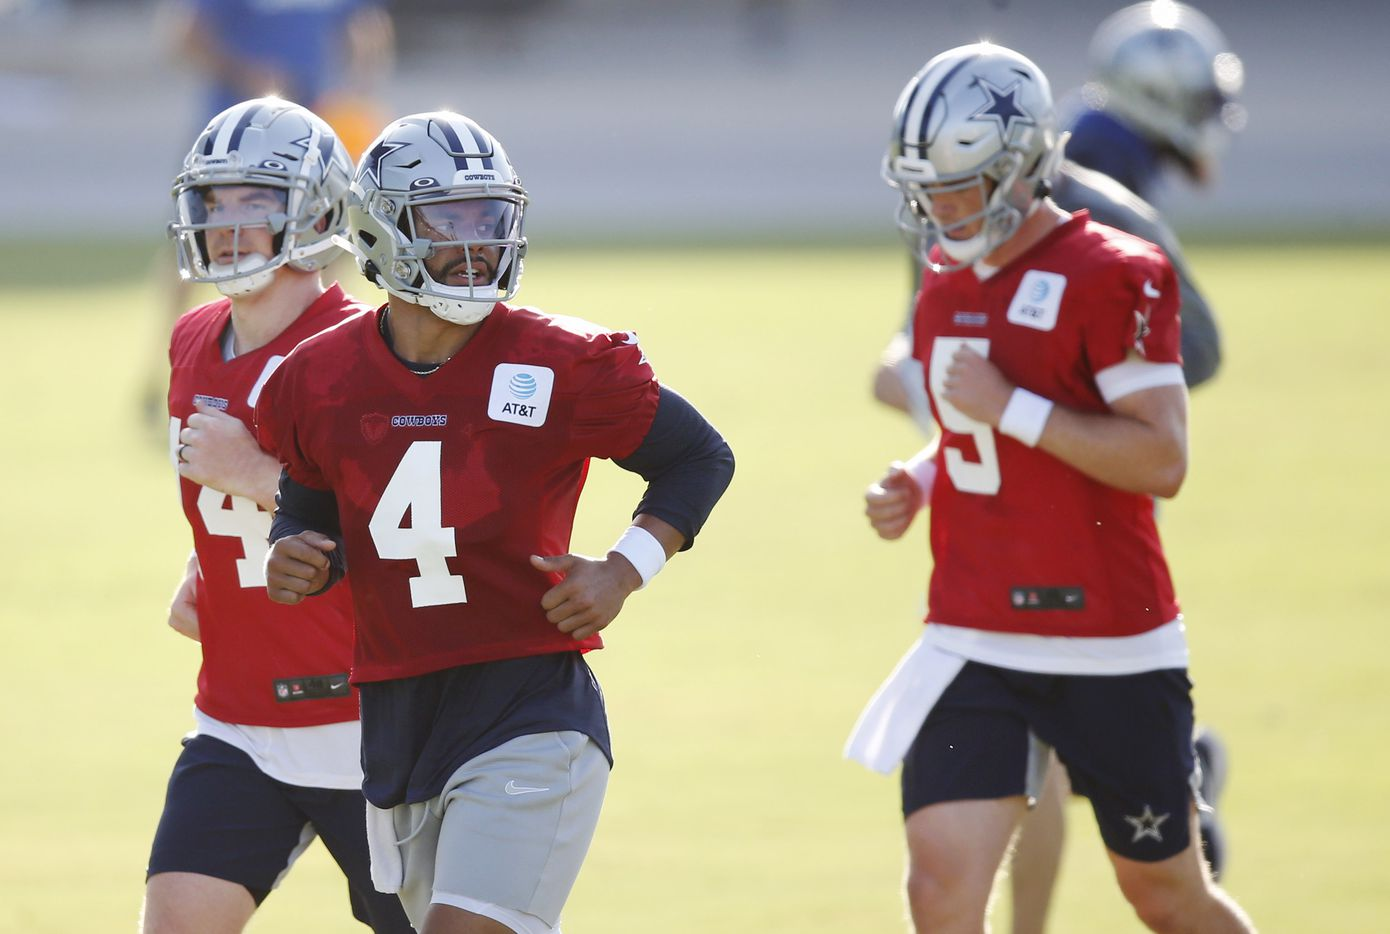 Dallas Cowboys quarterback Dak Prescott (4), Dallas Cowboys quarterback Andy Dalton (14) and Dallas Cowboys quarterback Clayton Thorson (5) take the field during the first day of training camp at Dallas Cowboys headquarters at The Star in Frisco, Texas on Friday, August 14, 2020. (Vernon Bryant/The Dallas Morning News)